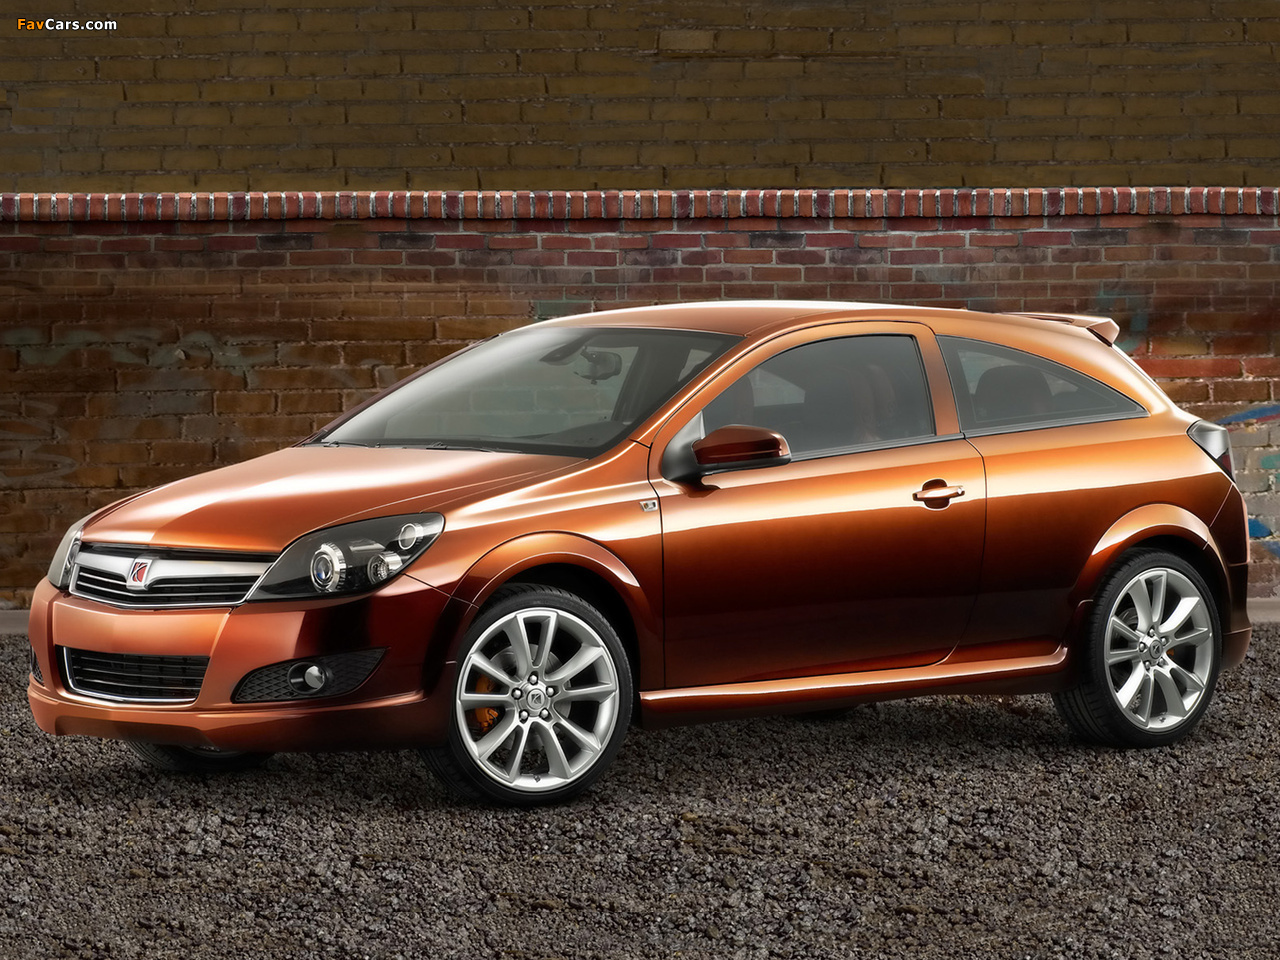 Saturn Astra Tuner Concept 2007 wallpapers (1280 x 960)